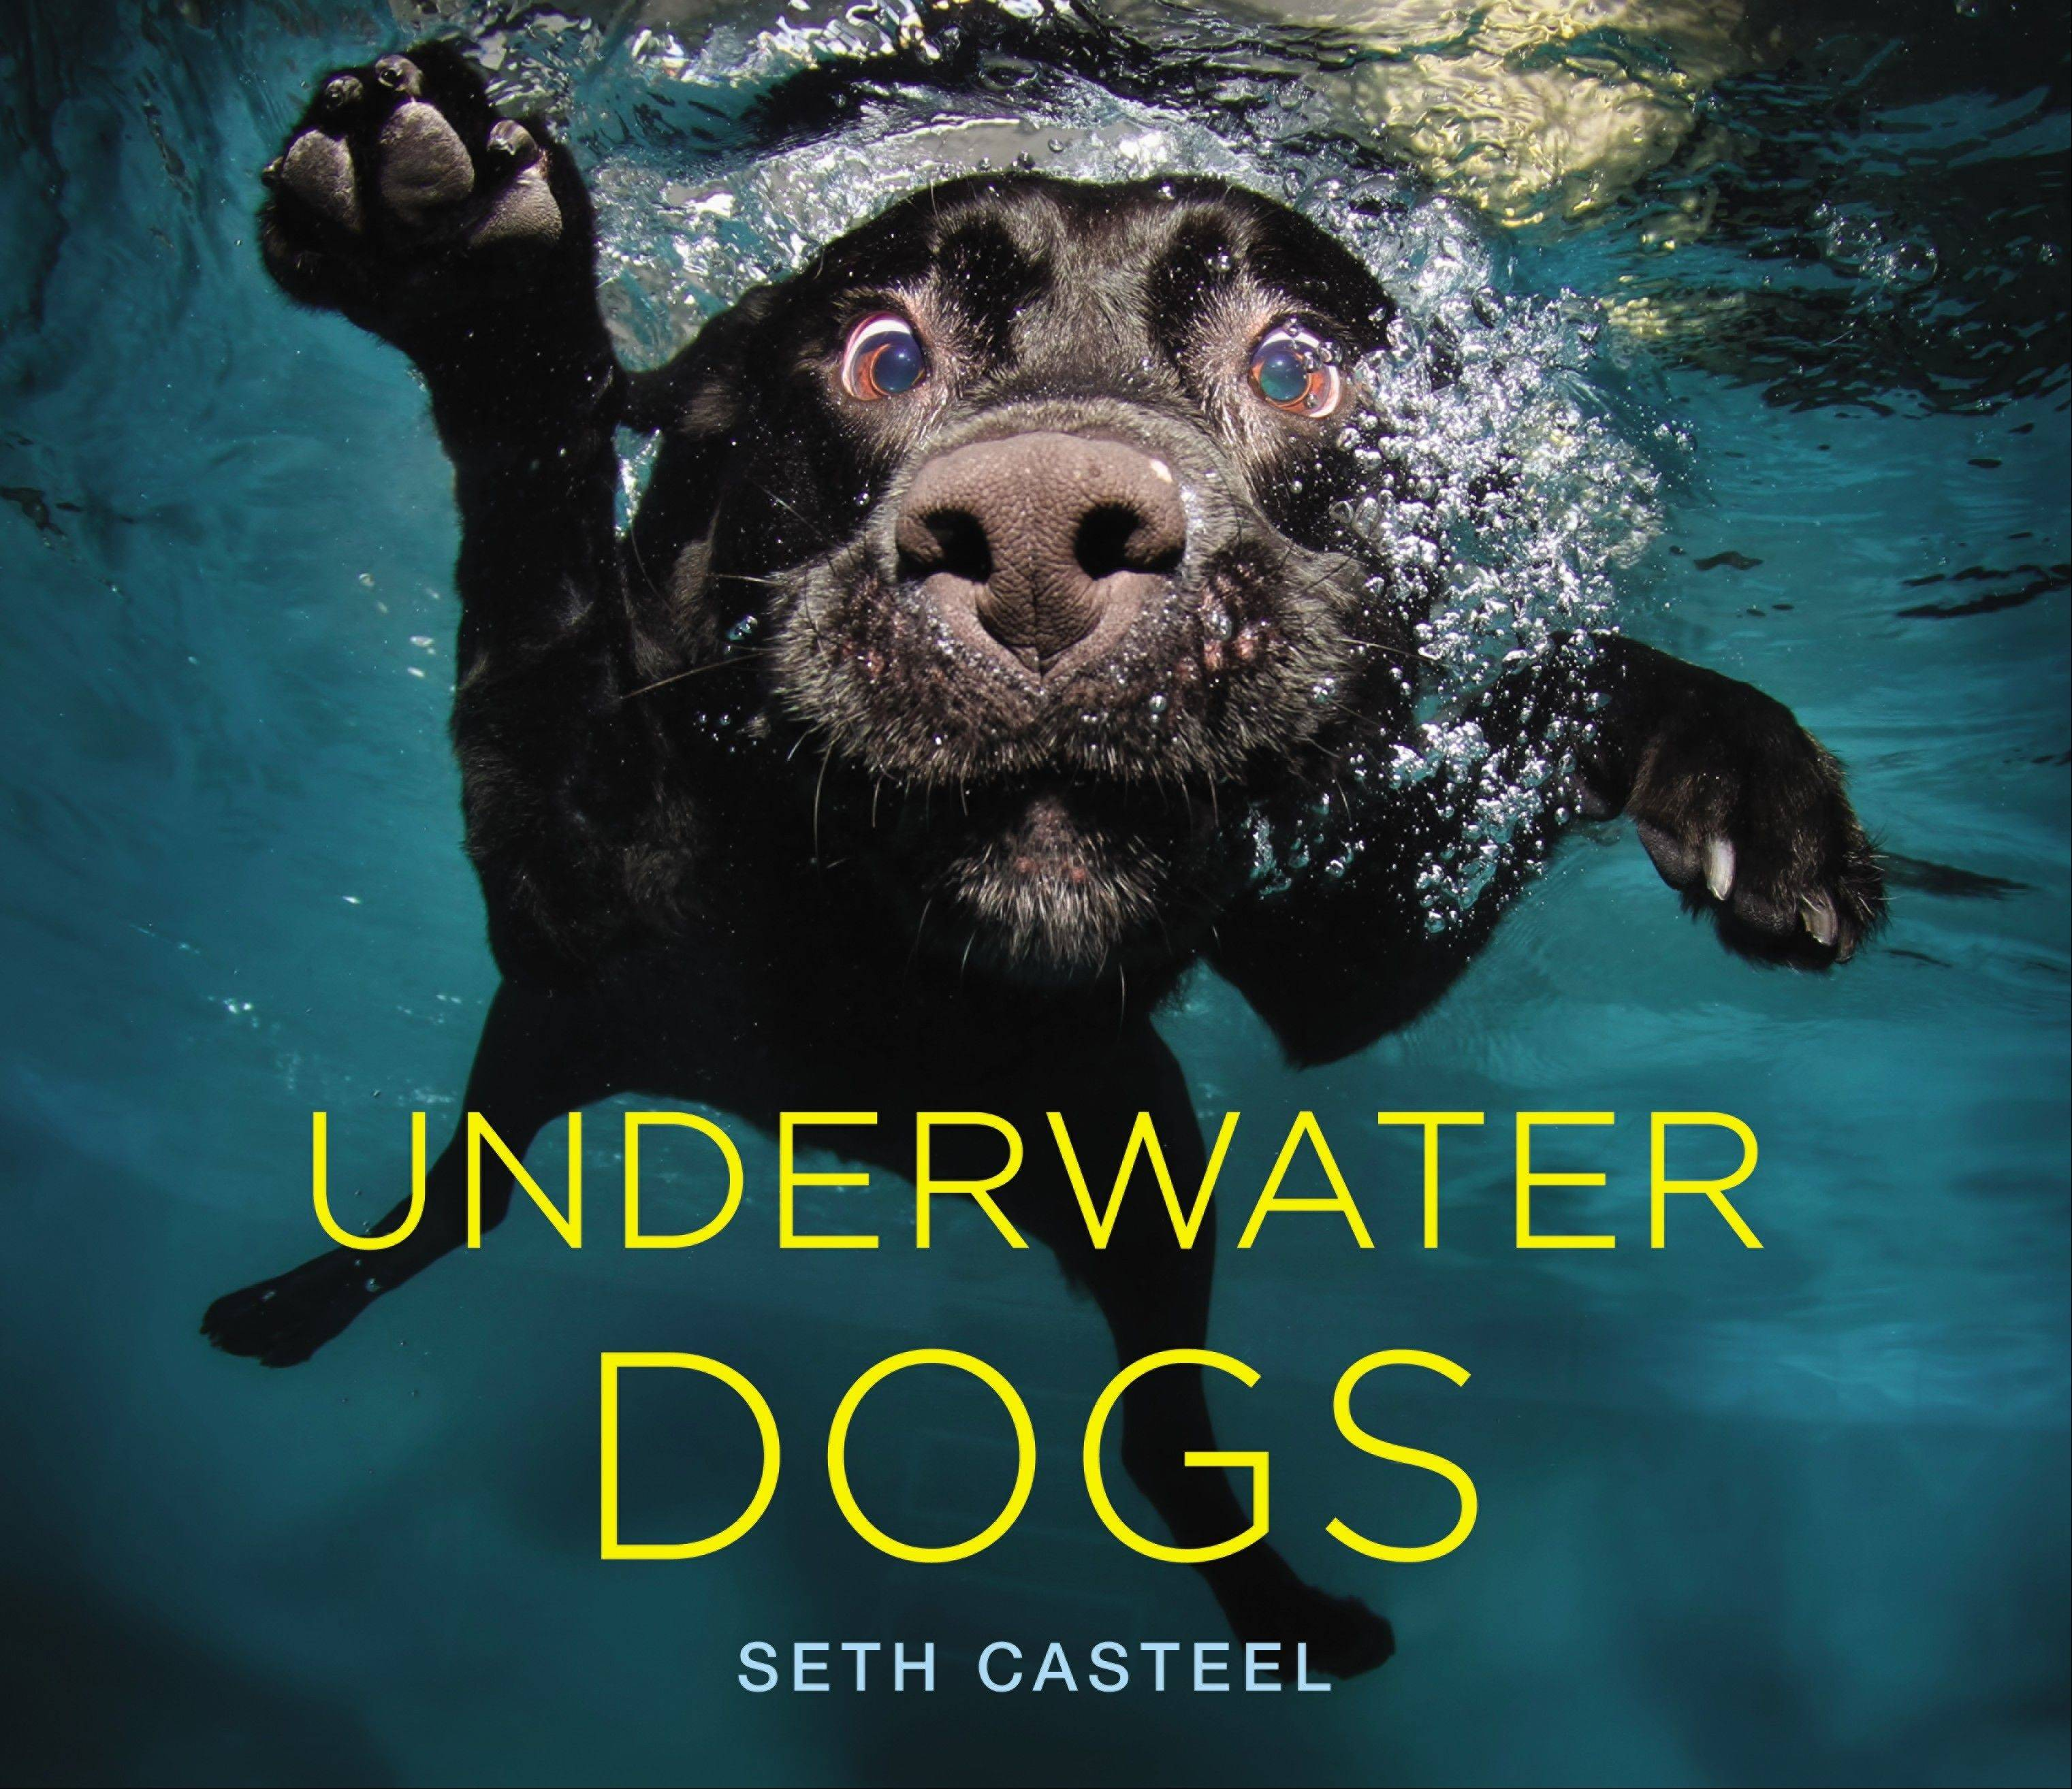 This January 2012 photo provided by photographer Seth Casteel shows Duchess on the cover of his photo book 'Underwater Dogs' taken in Chicago.